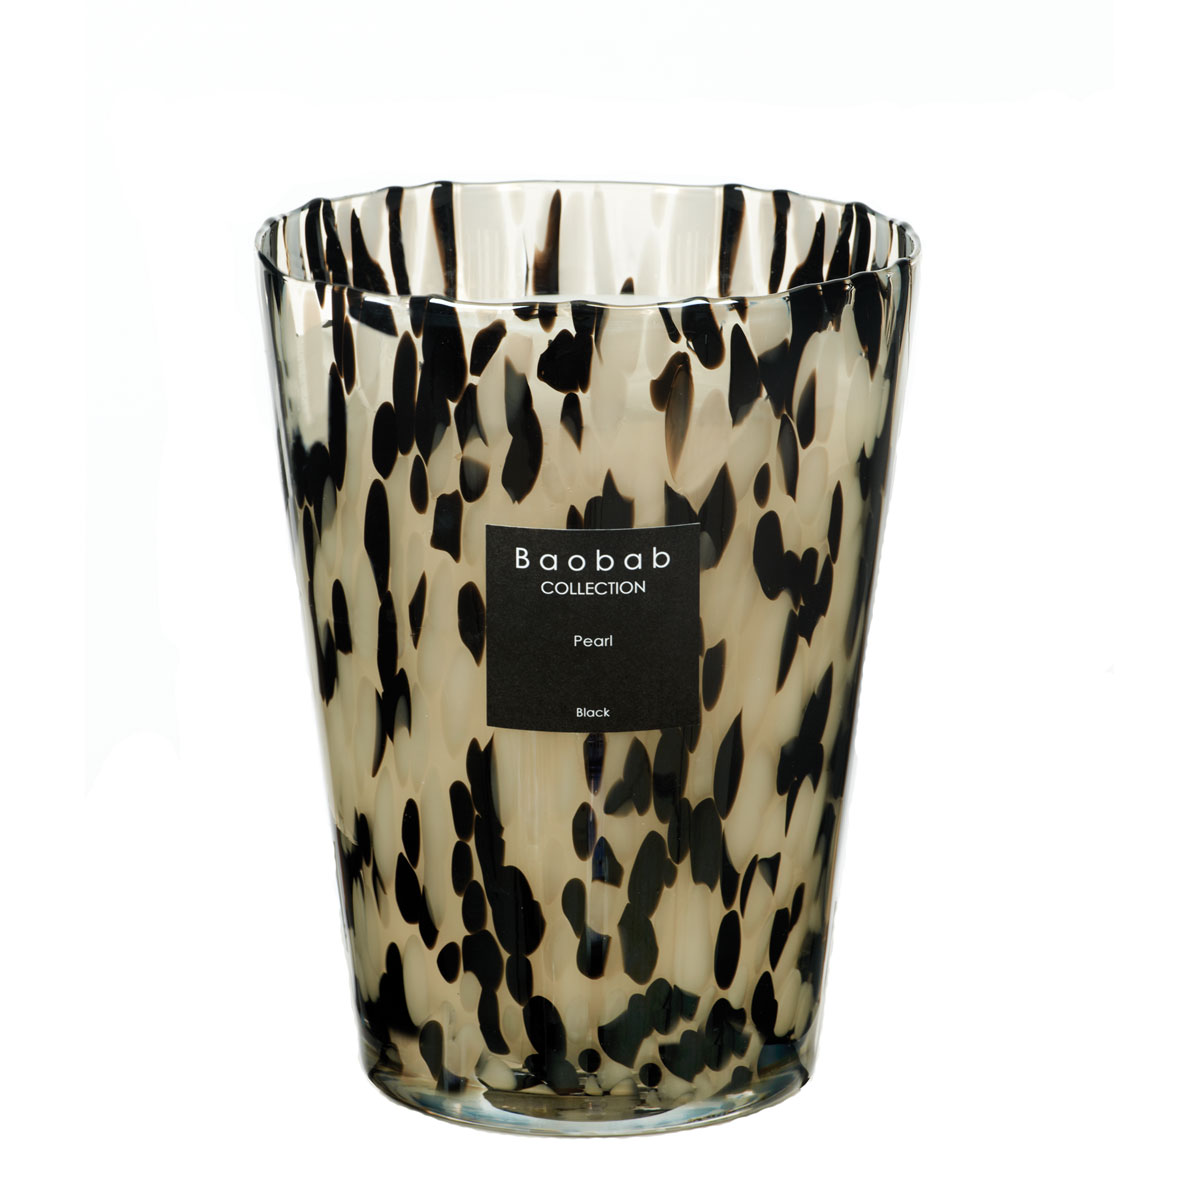 Baobab Collection Pearls Candle Design Oostende